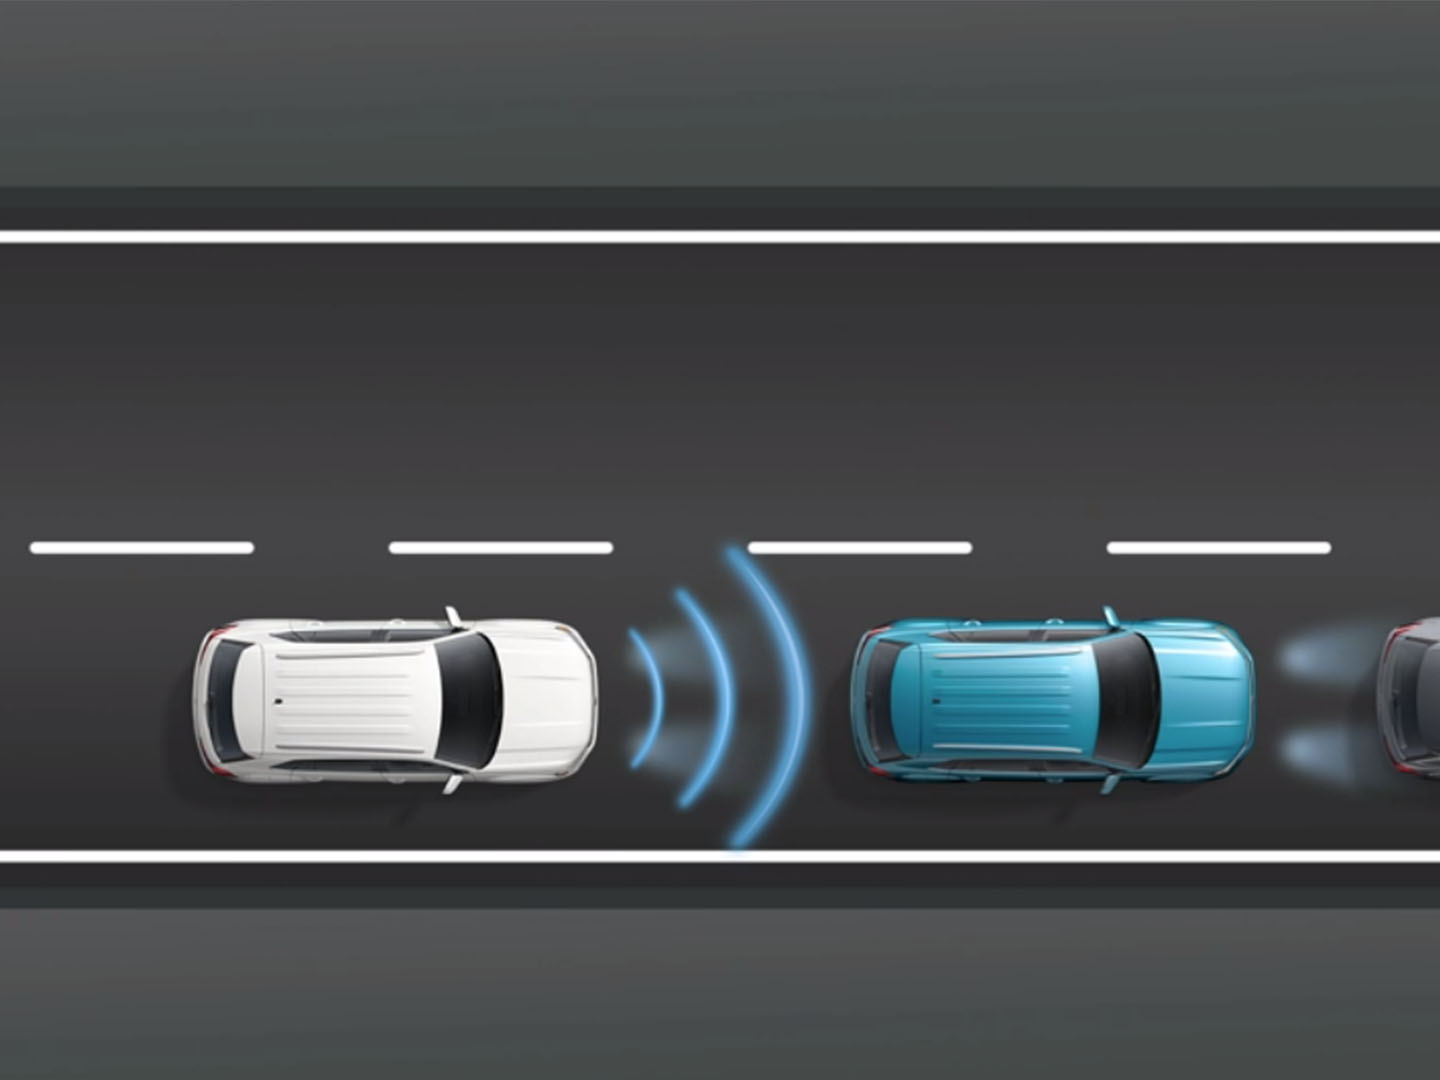 Vw Adaptive Cruise Control Technology